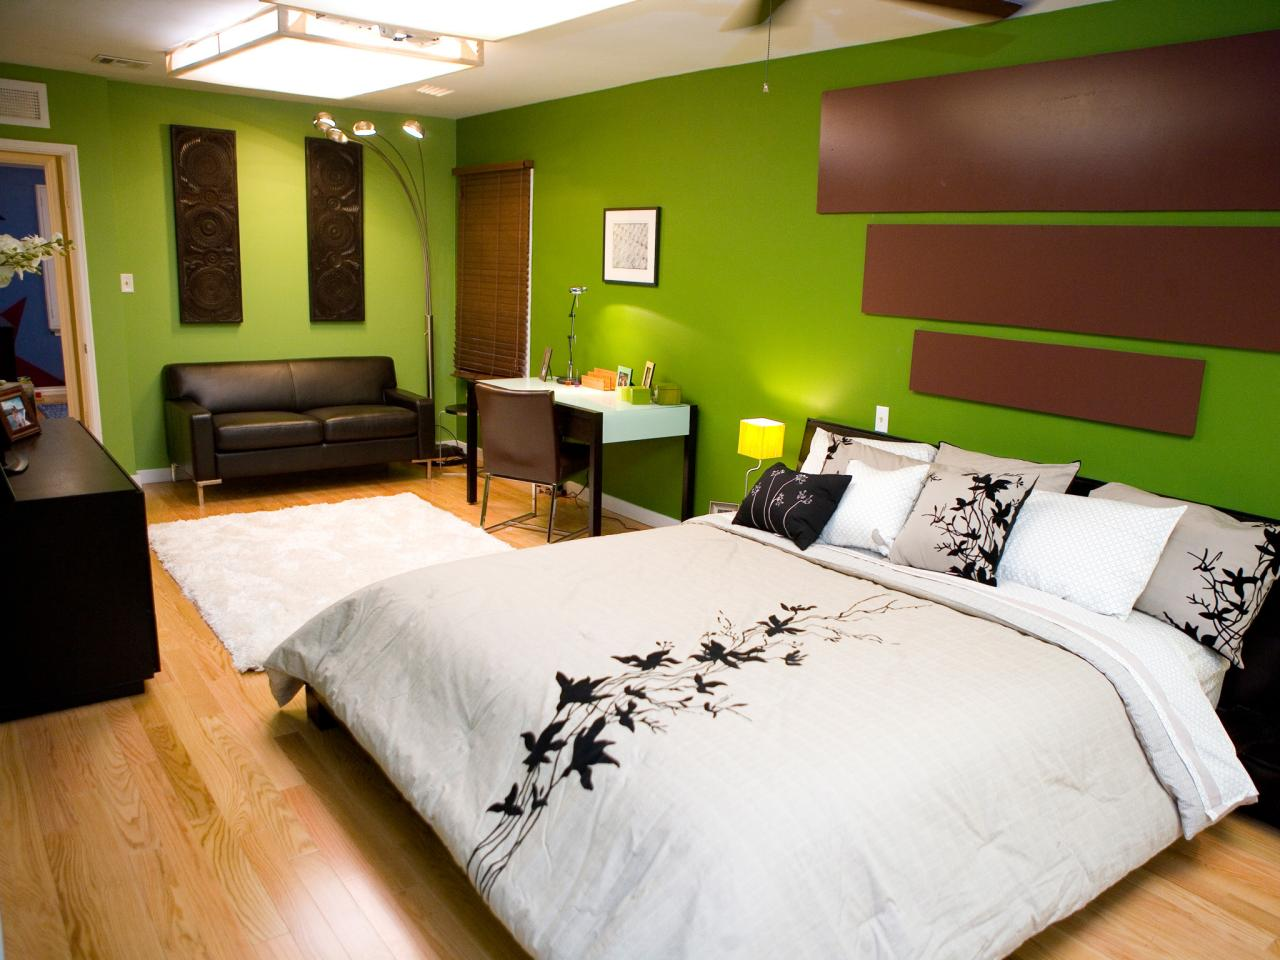 Green Bedrooms Pictures Options Ideas HGTV